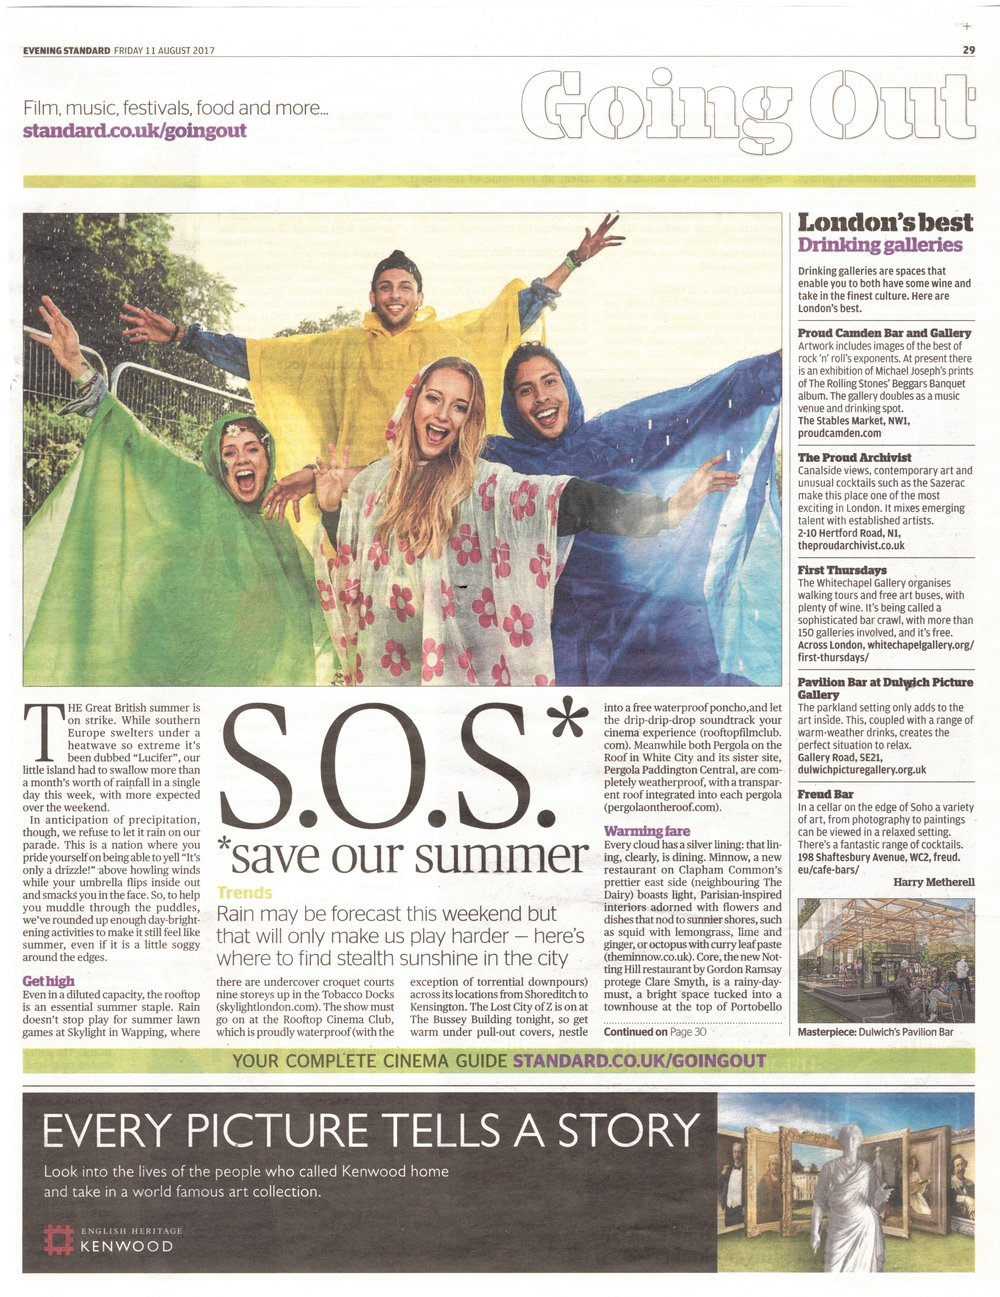 Evening Standard - 11 August 2017 - Skylight Feature .jpeg